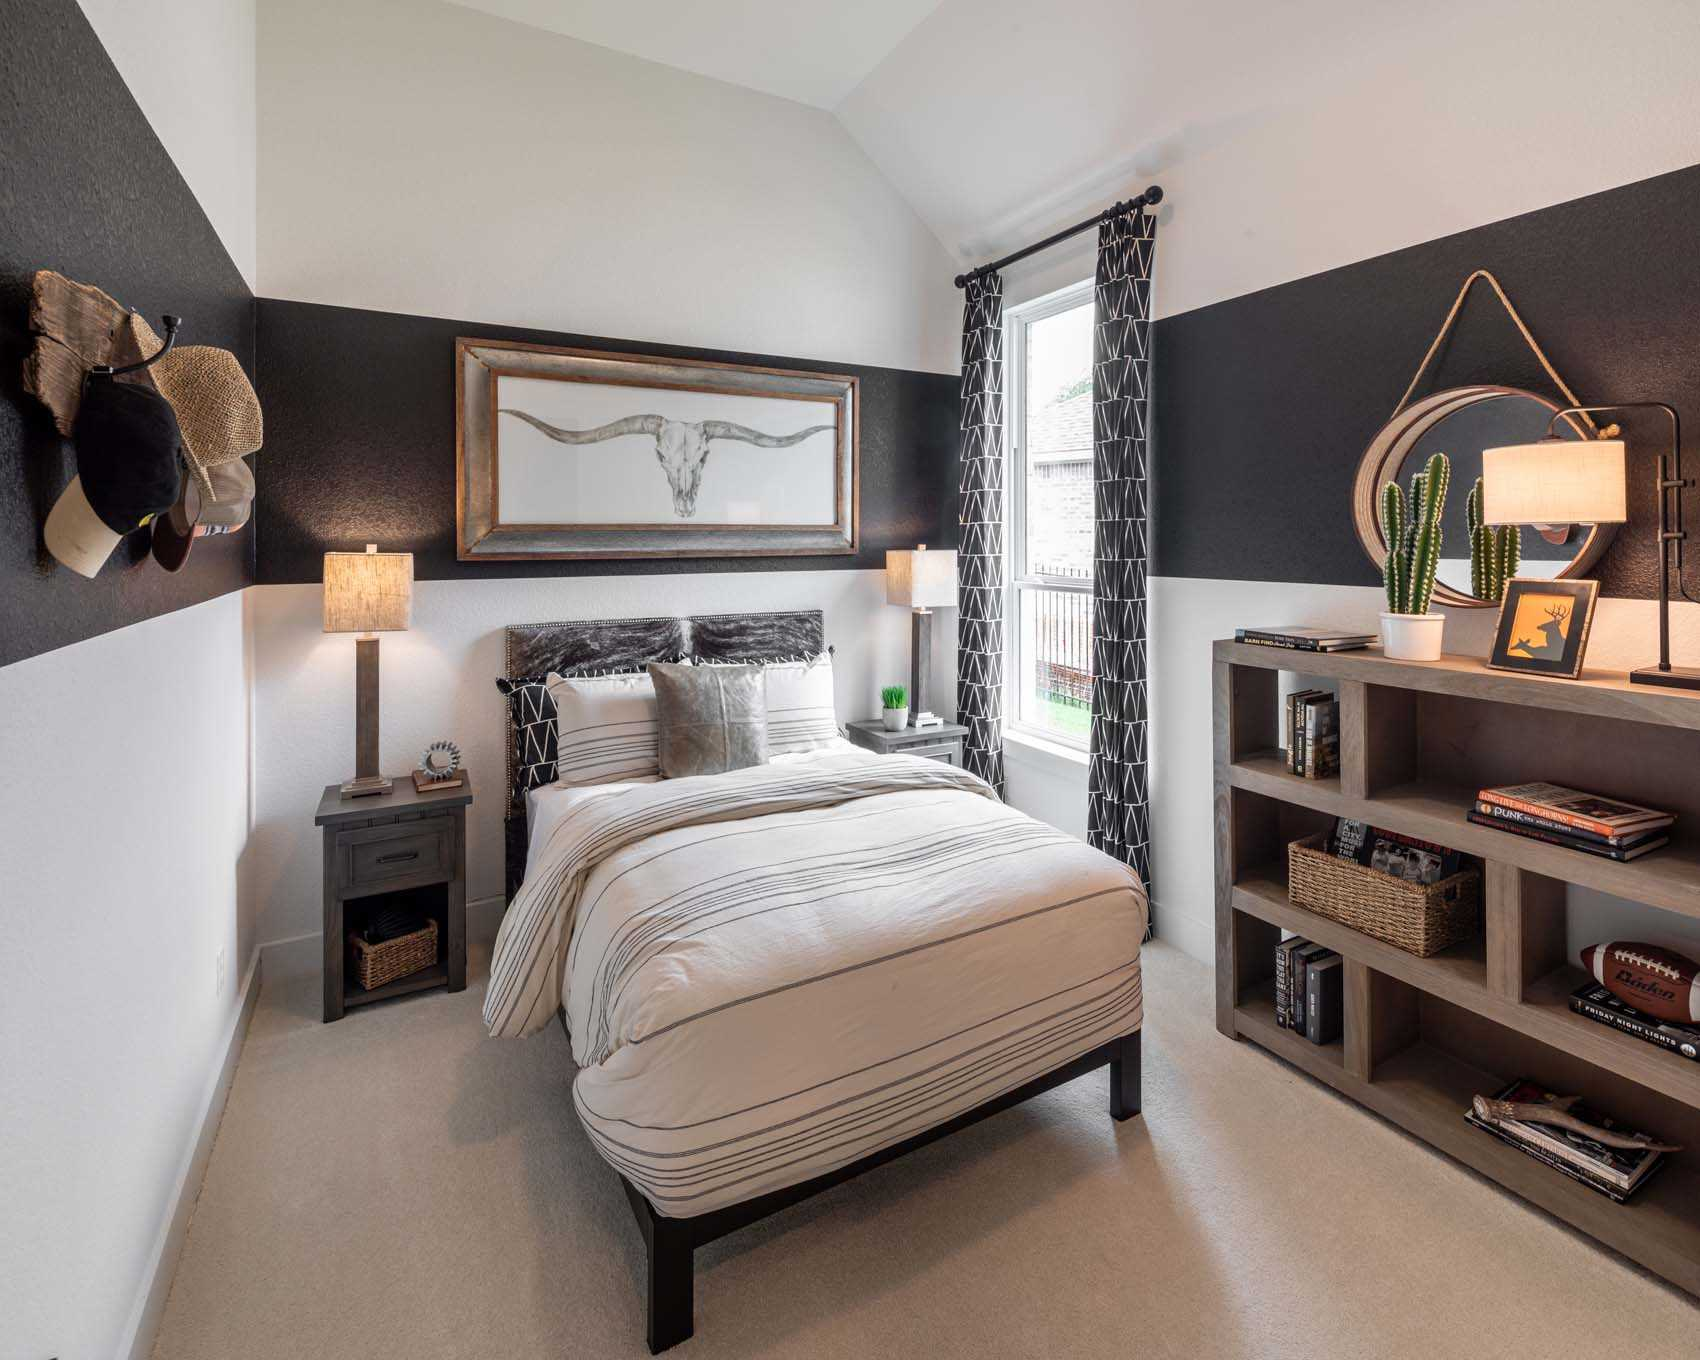 Bedroom featured in the Plan 215 By Highland Homes in Houston, TX